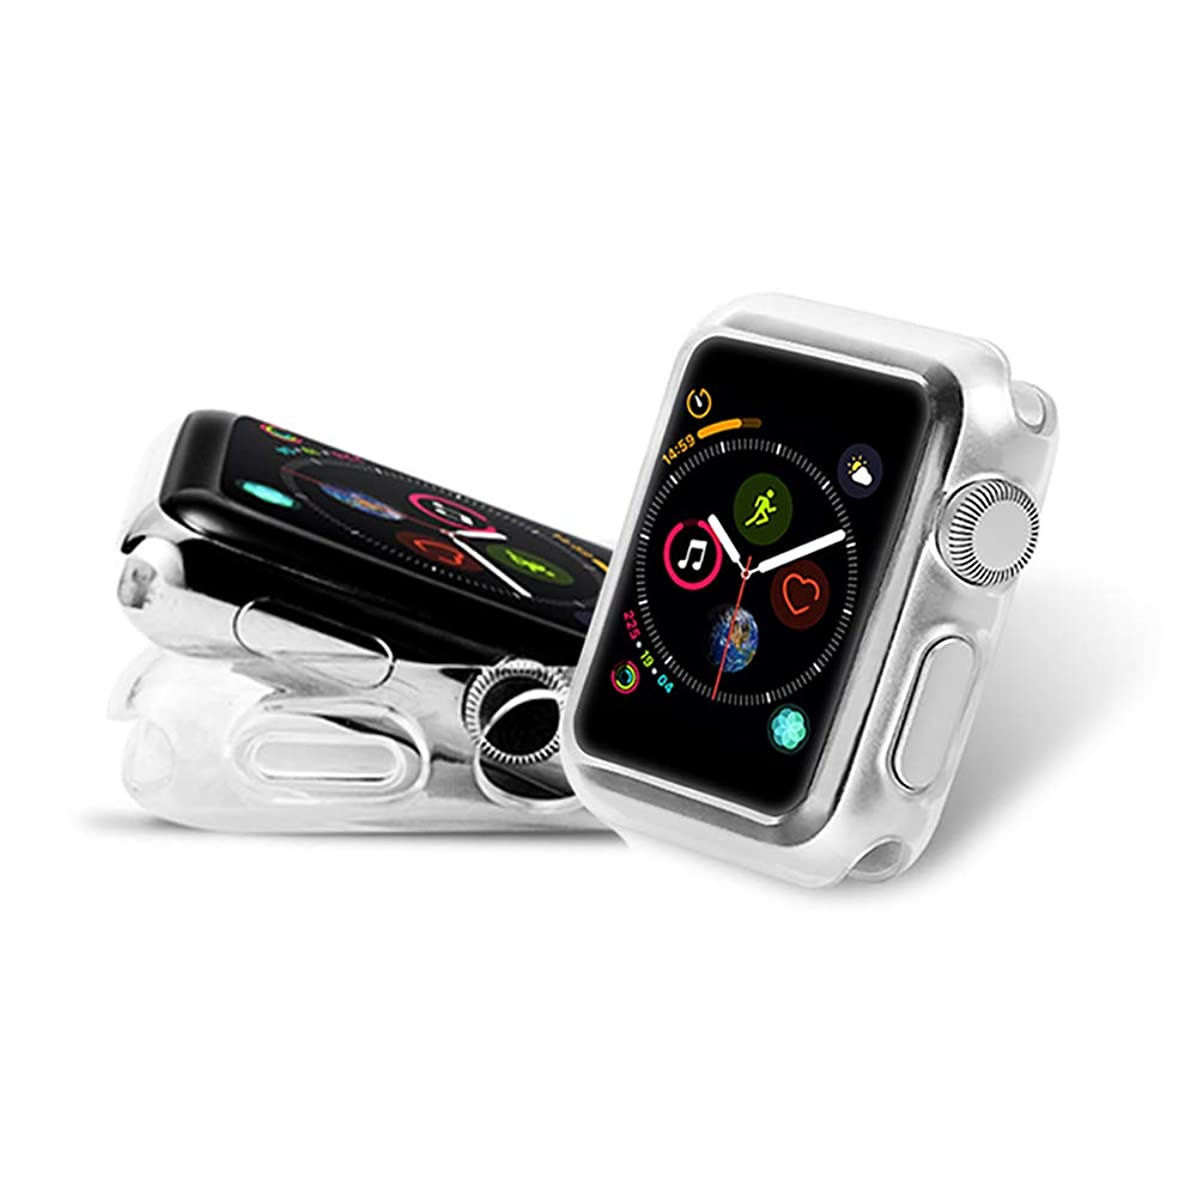 PULEN Apple?Watch?Series?4?Case 44mm 2018,Soft TPU Case Cover Scratch Resiaance Shook Proof Anti-Fall Ultra Clear for New Apple?Watch?Series?4 2018 44mm Version (2 Packs)